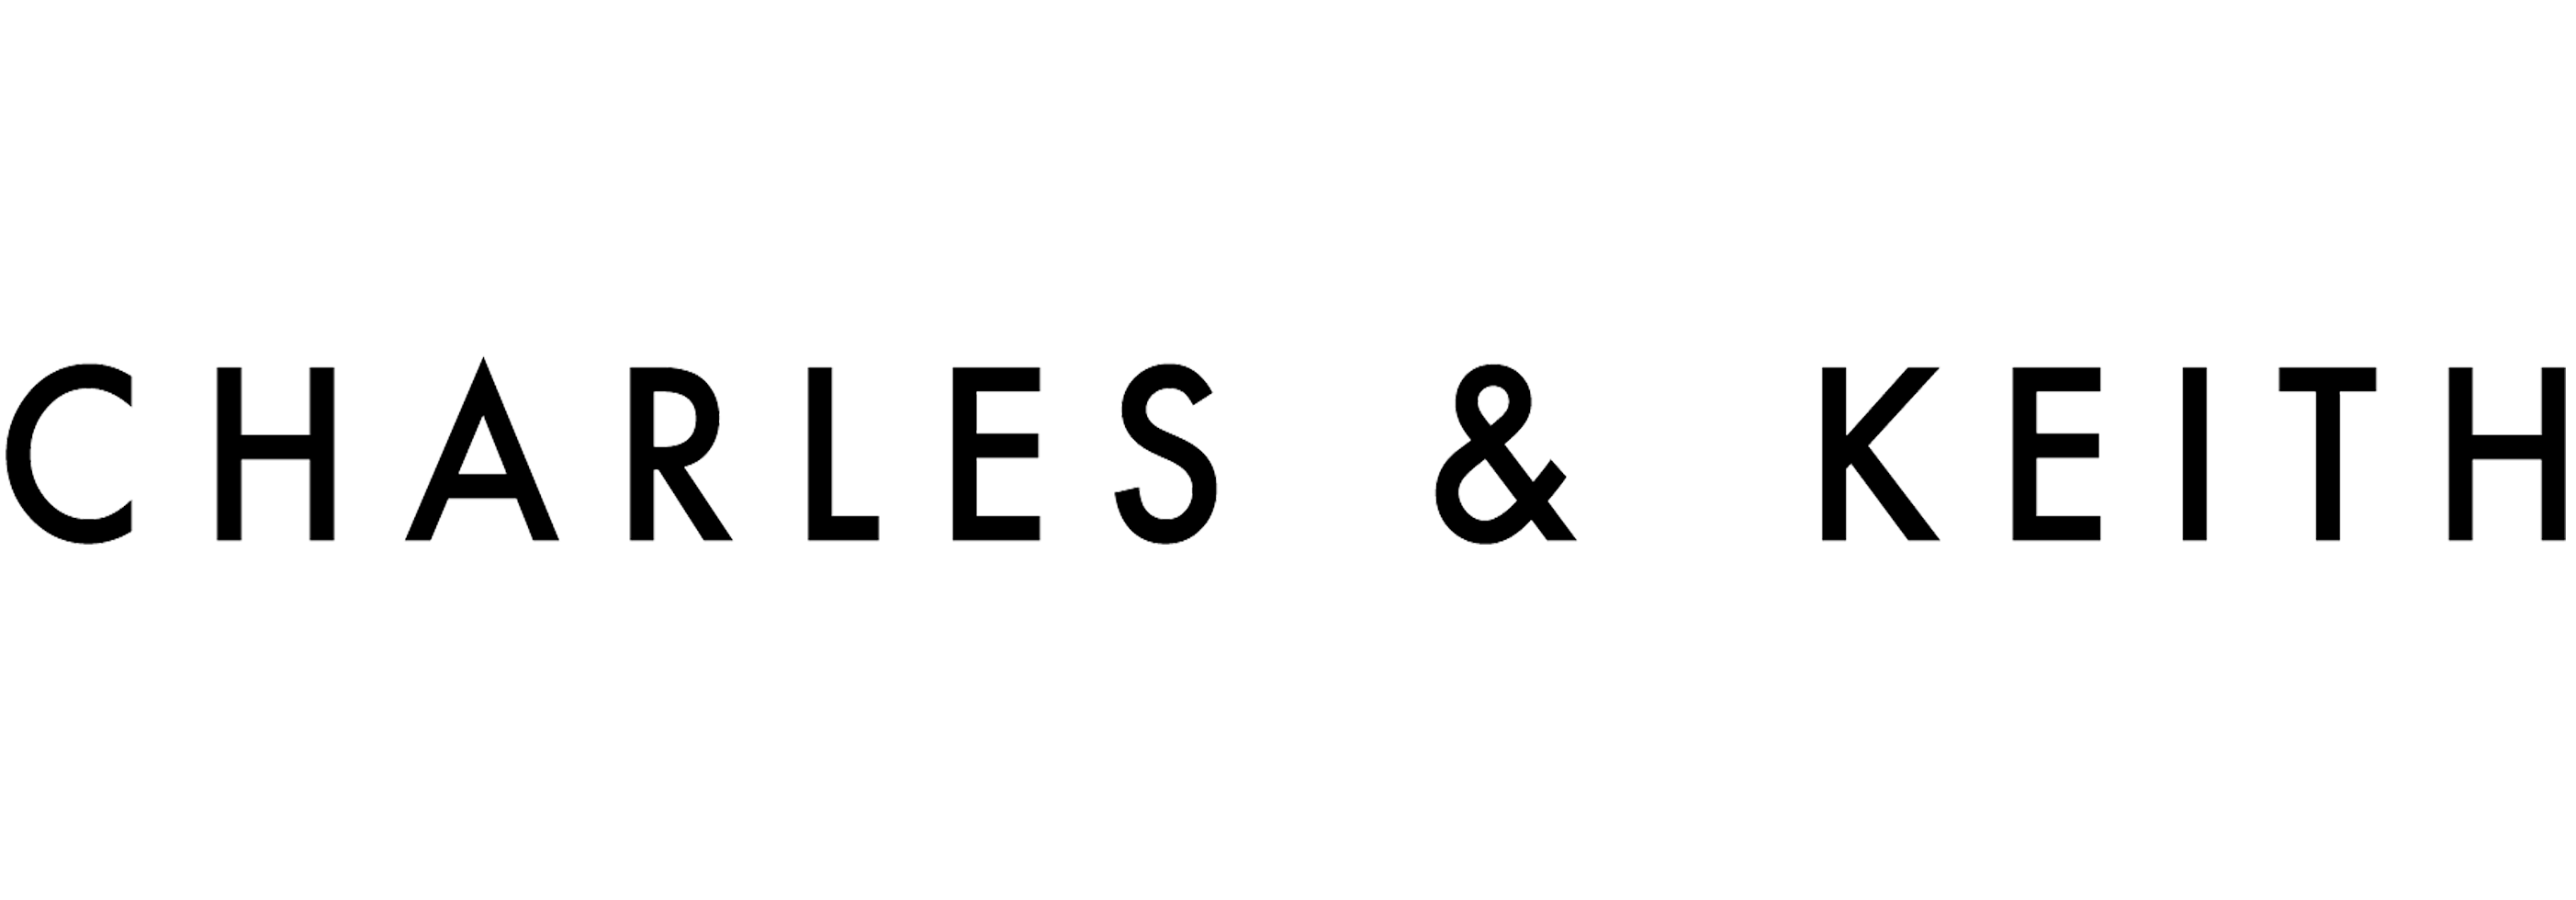 Charles & Keith Promotions & Discounts